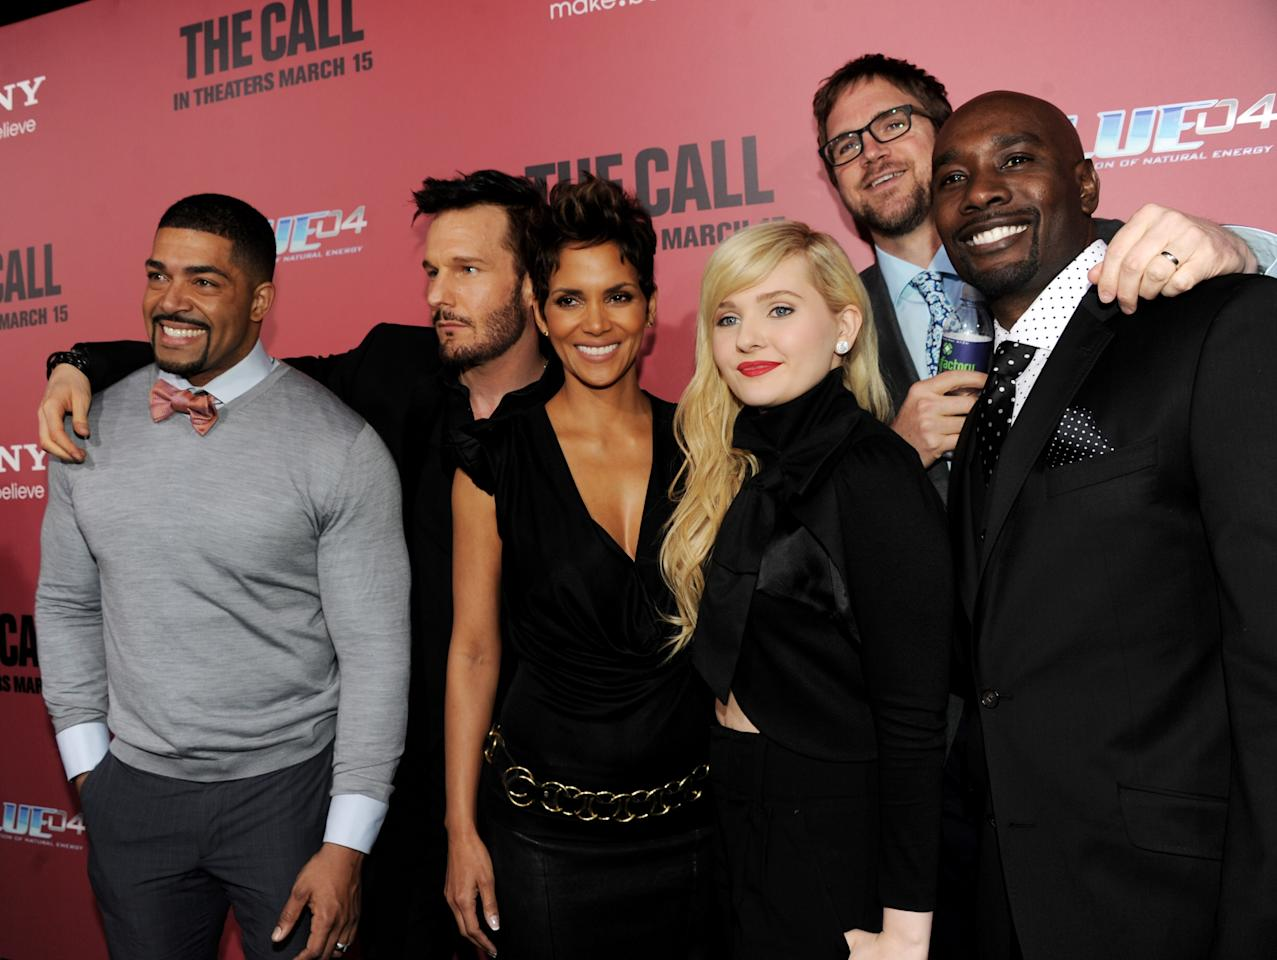 """LOS ANGELES, CA - MARCH 05:  (L-R) Actors David Otunga, Michael Eklund, Halle Berry, Abigail Breslin, director Brad Anderson and actor Morris Chestnut arrive at the premiere of Tri Star Pictures' """"The Call"""" at the Arclight Theatre on March 5, 2013 in Los Angeles, California.  (Photo by Kevin Winter/Getty Images)"""